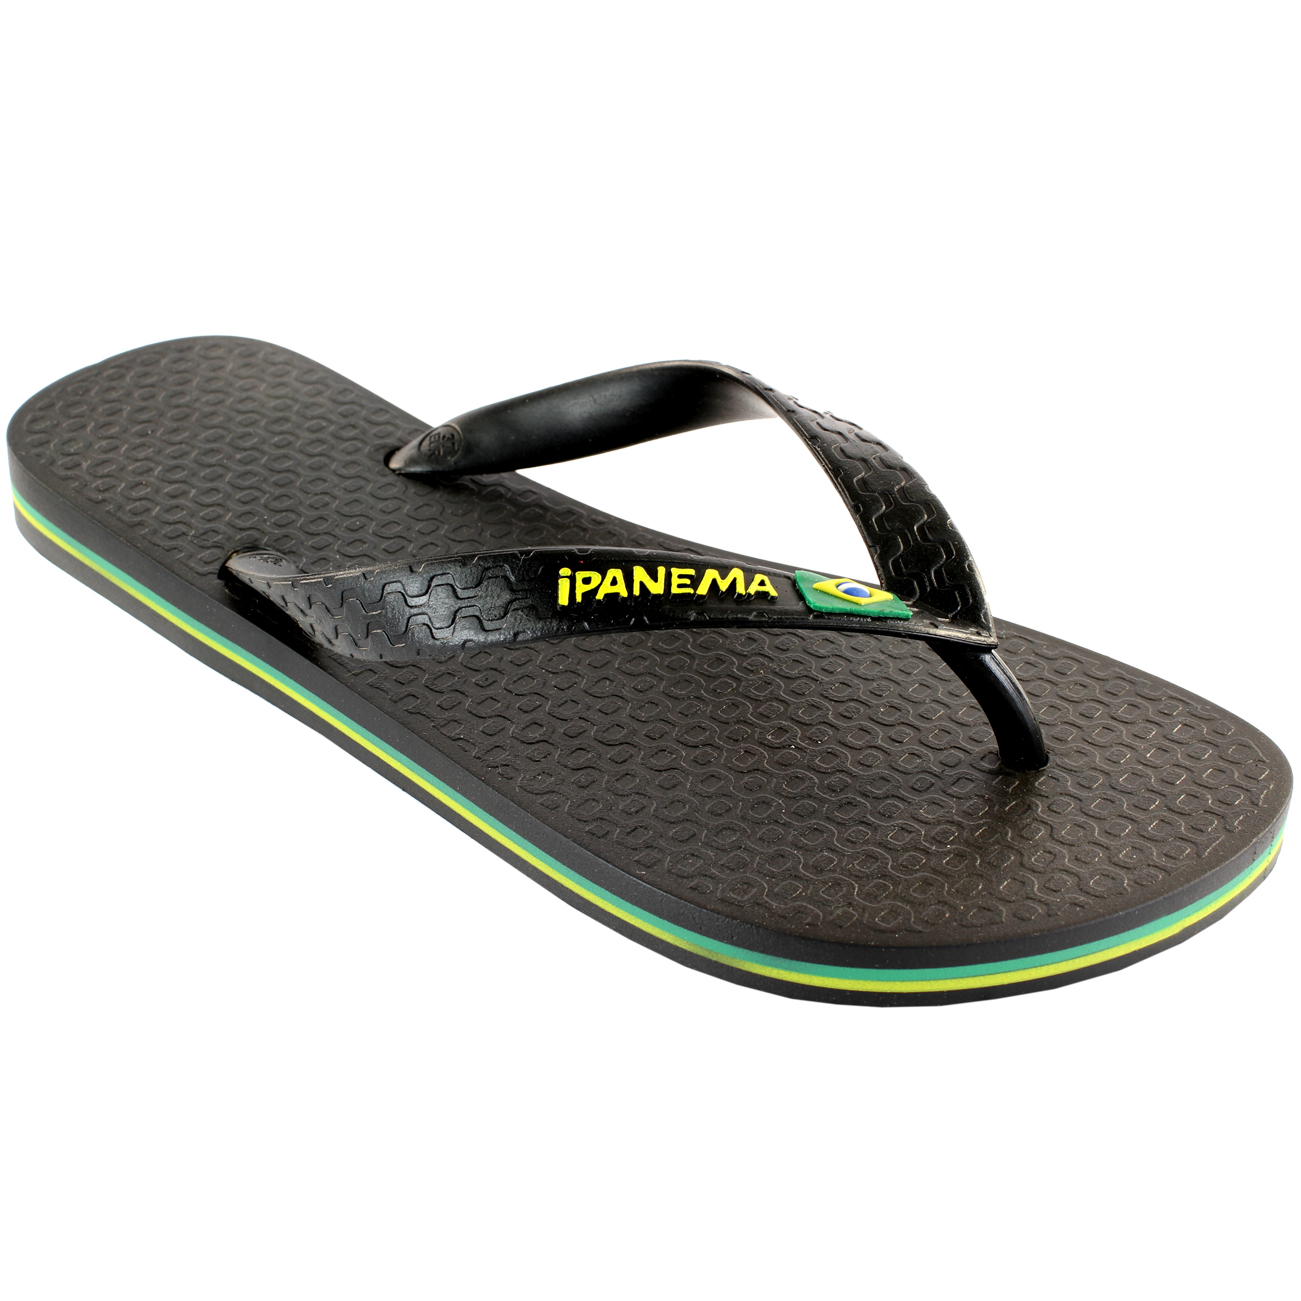 Here at Daniel Footwear, we provide you with designer womens flip flops so you can enjoy the sun in style. Keep your feet cool and fresh with the open design our flip flops; wear with your favourite swimsuit by the pool or wear with casual daytime wear for a relaxed look.